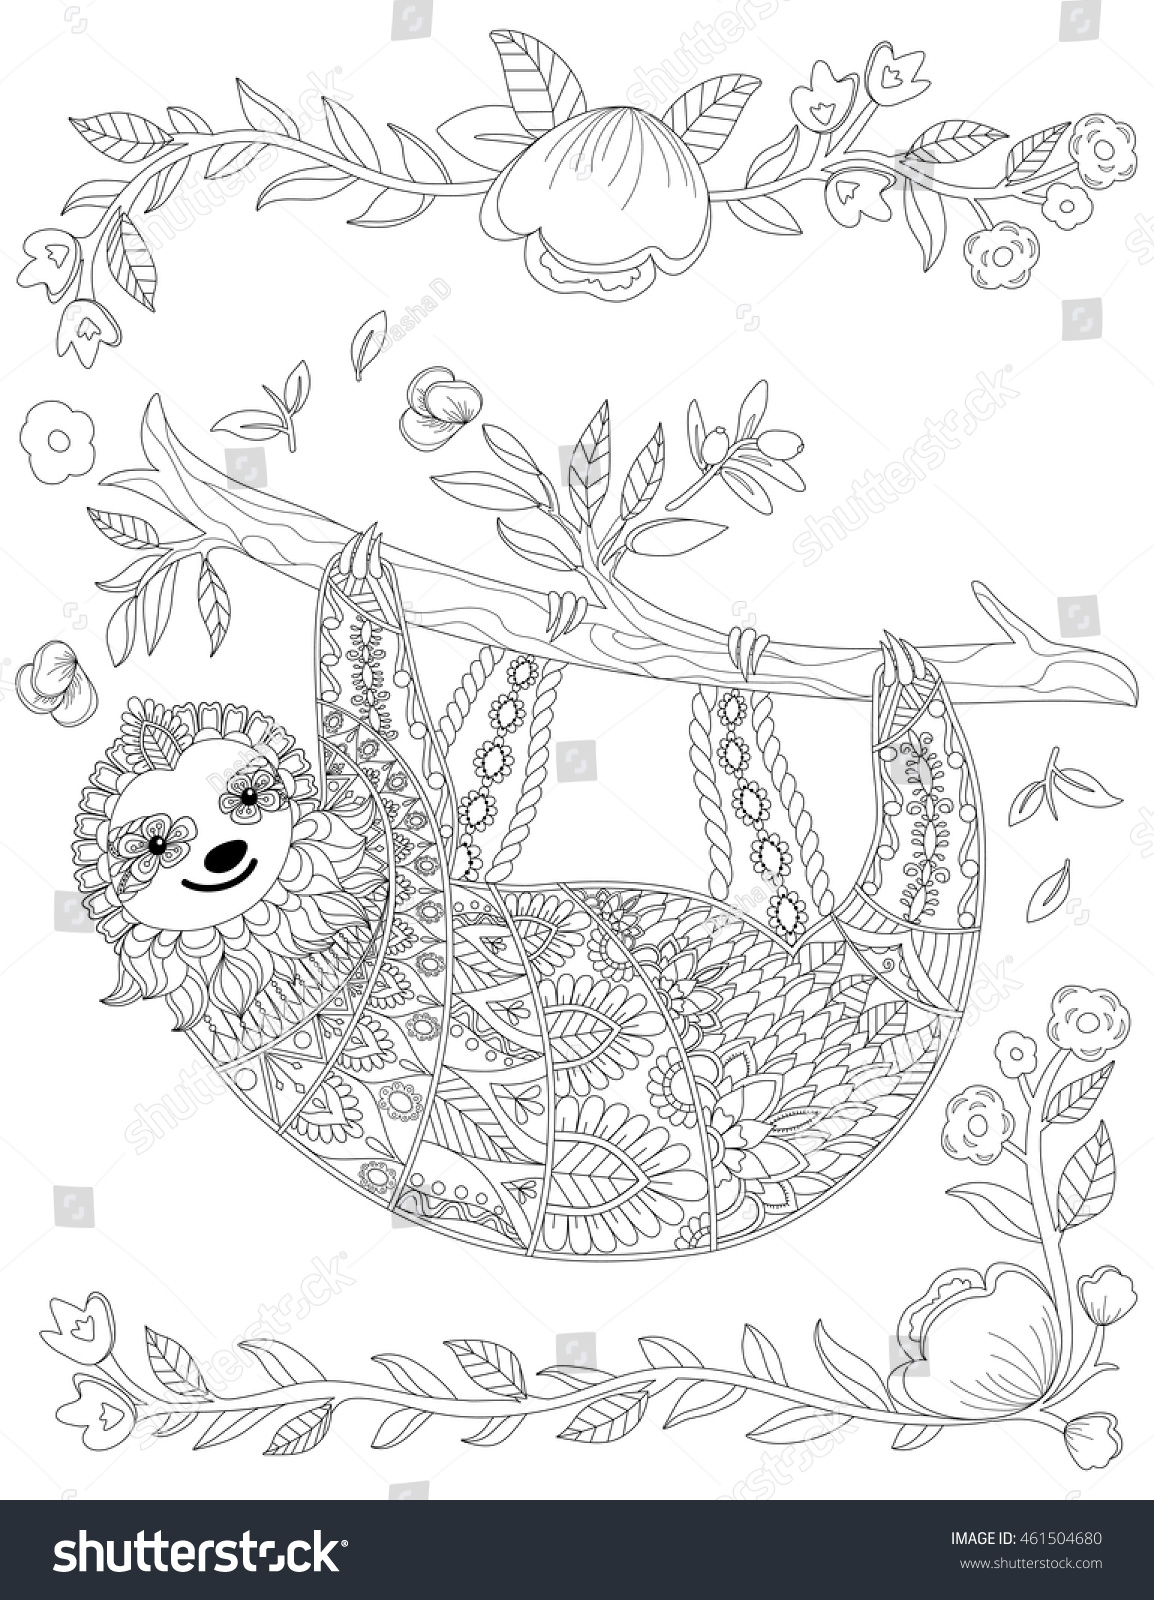 vector ornate cute sloth on tree stock vector 461504680 shutterstock